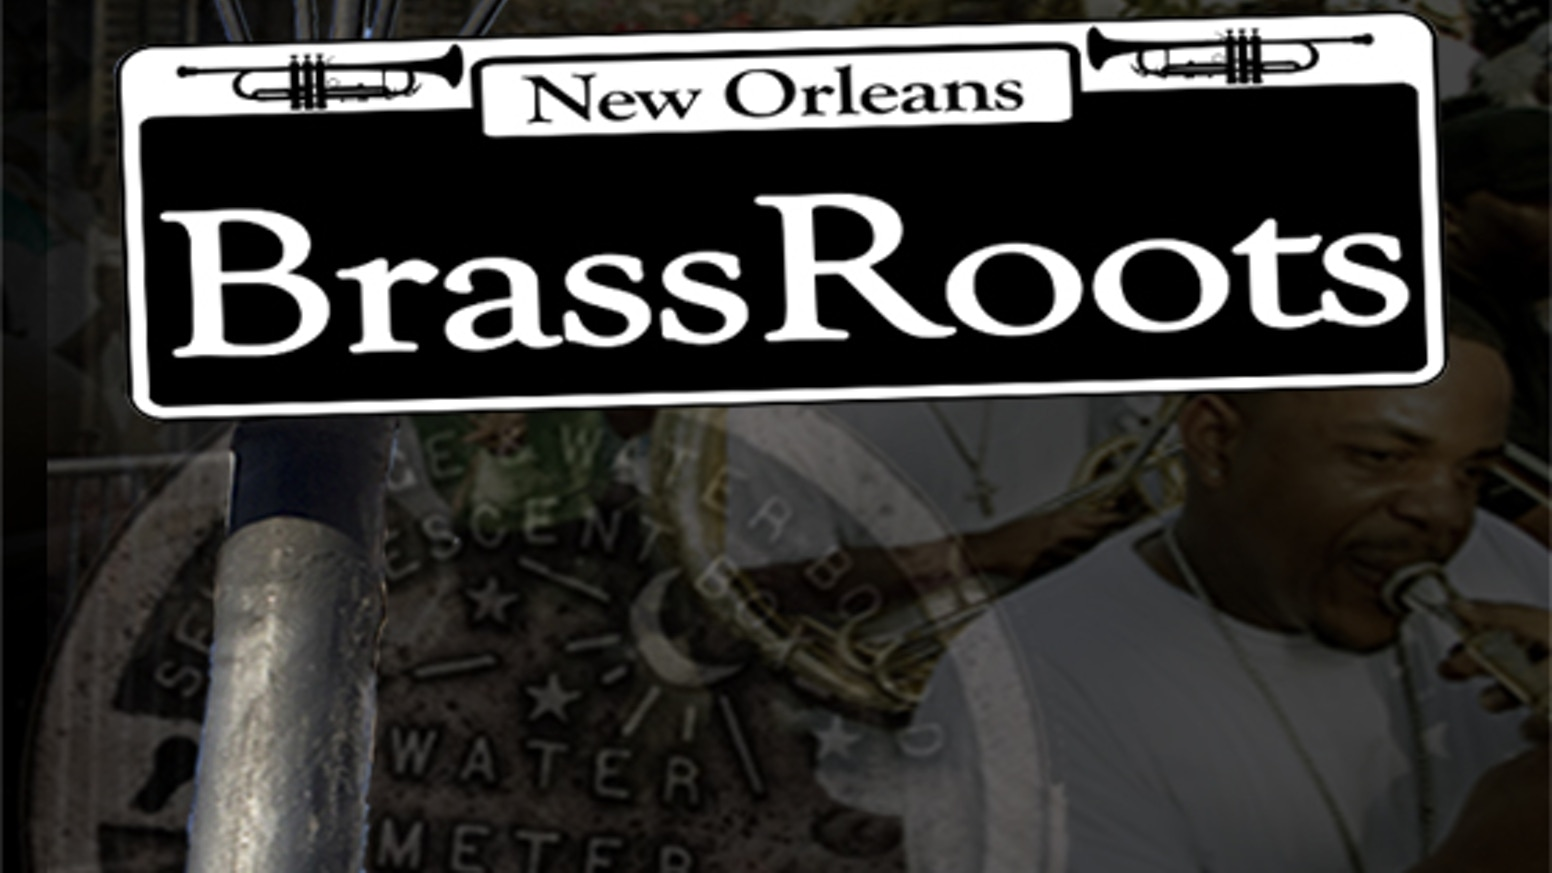 Brass Roots: The Untold History of New Orleans Brass Bands